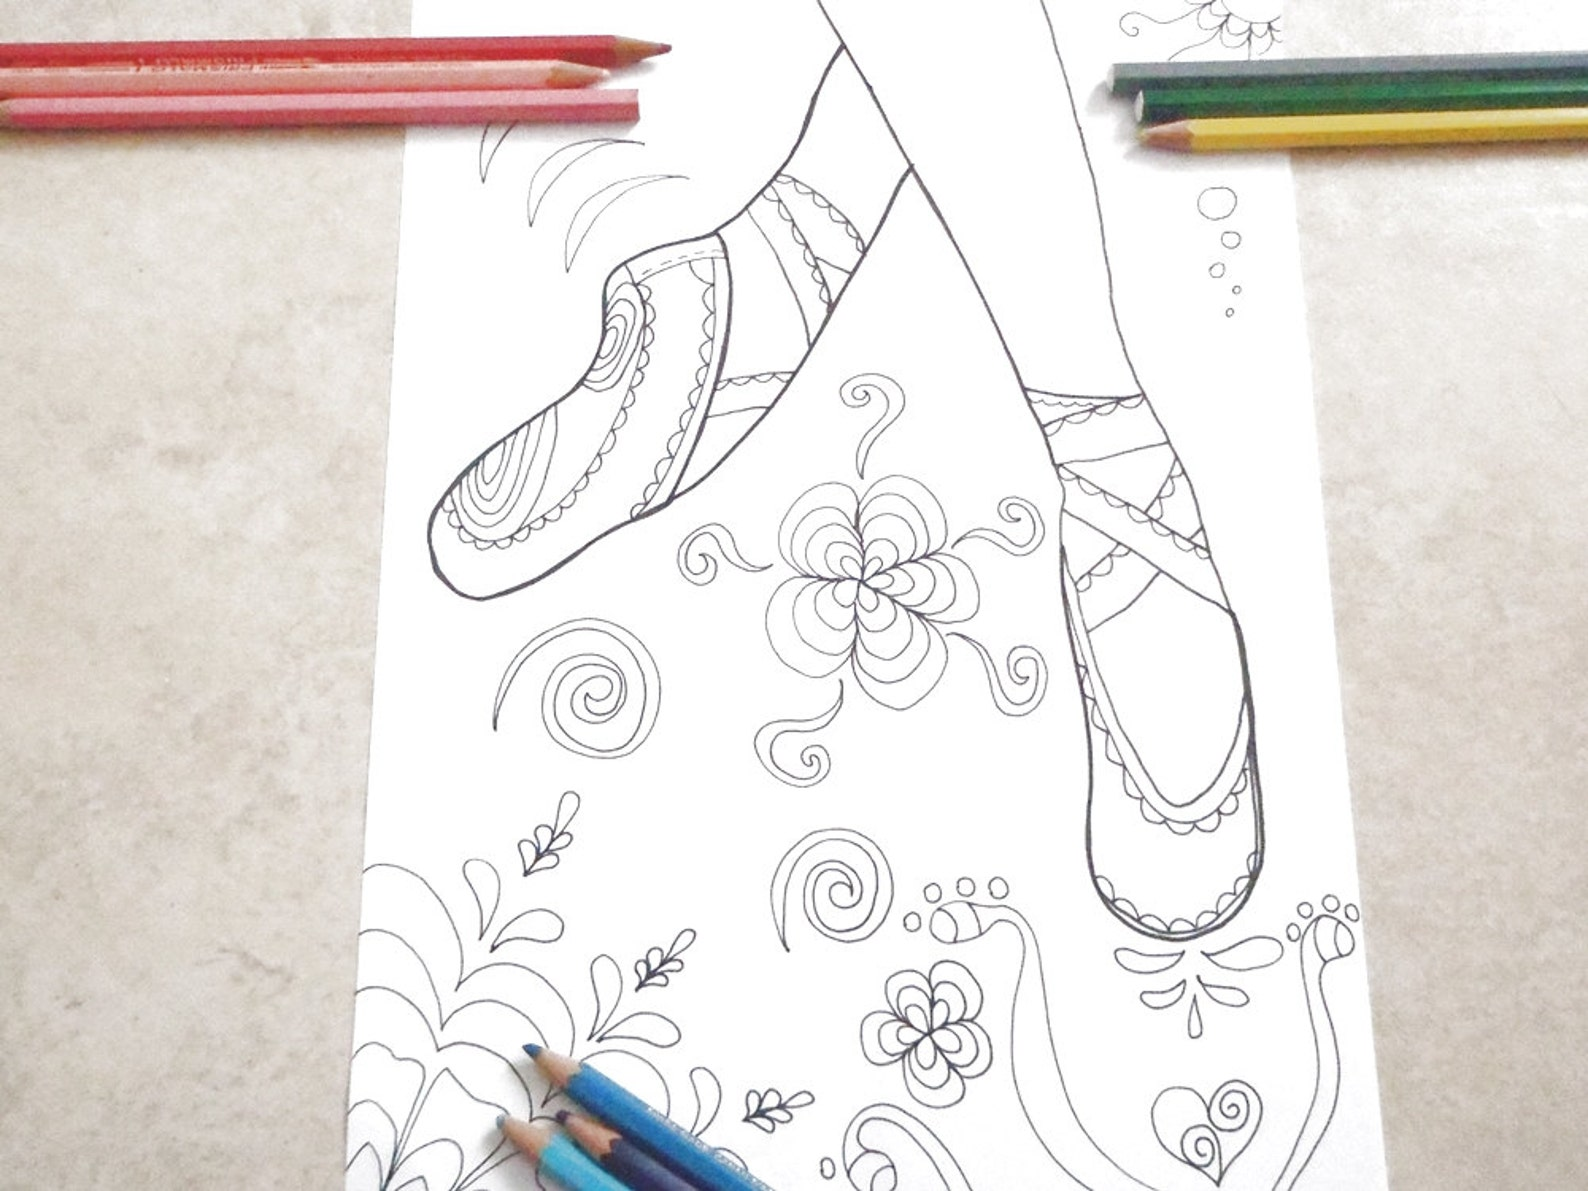 ballet shoes ballerina dancer coloring girl gale adults classic dance slipper foot lover 足 fetish feet leg fashion perv art laso